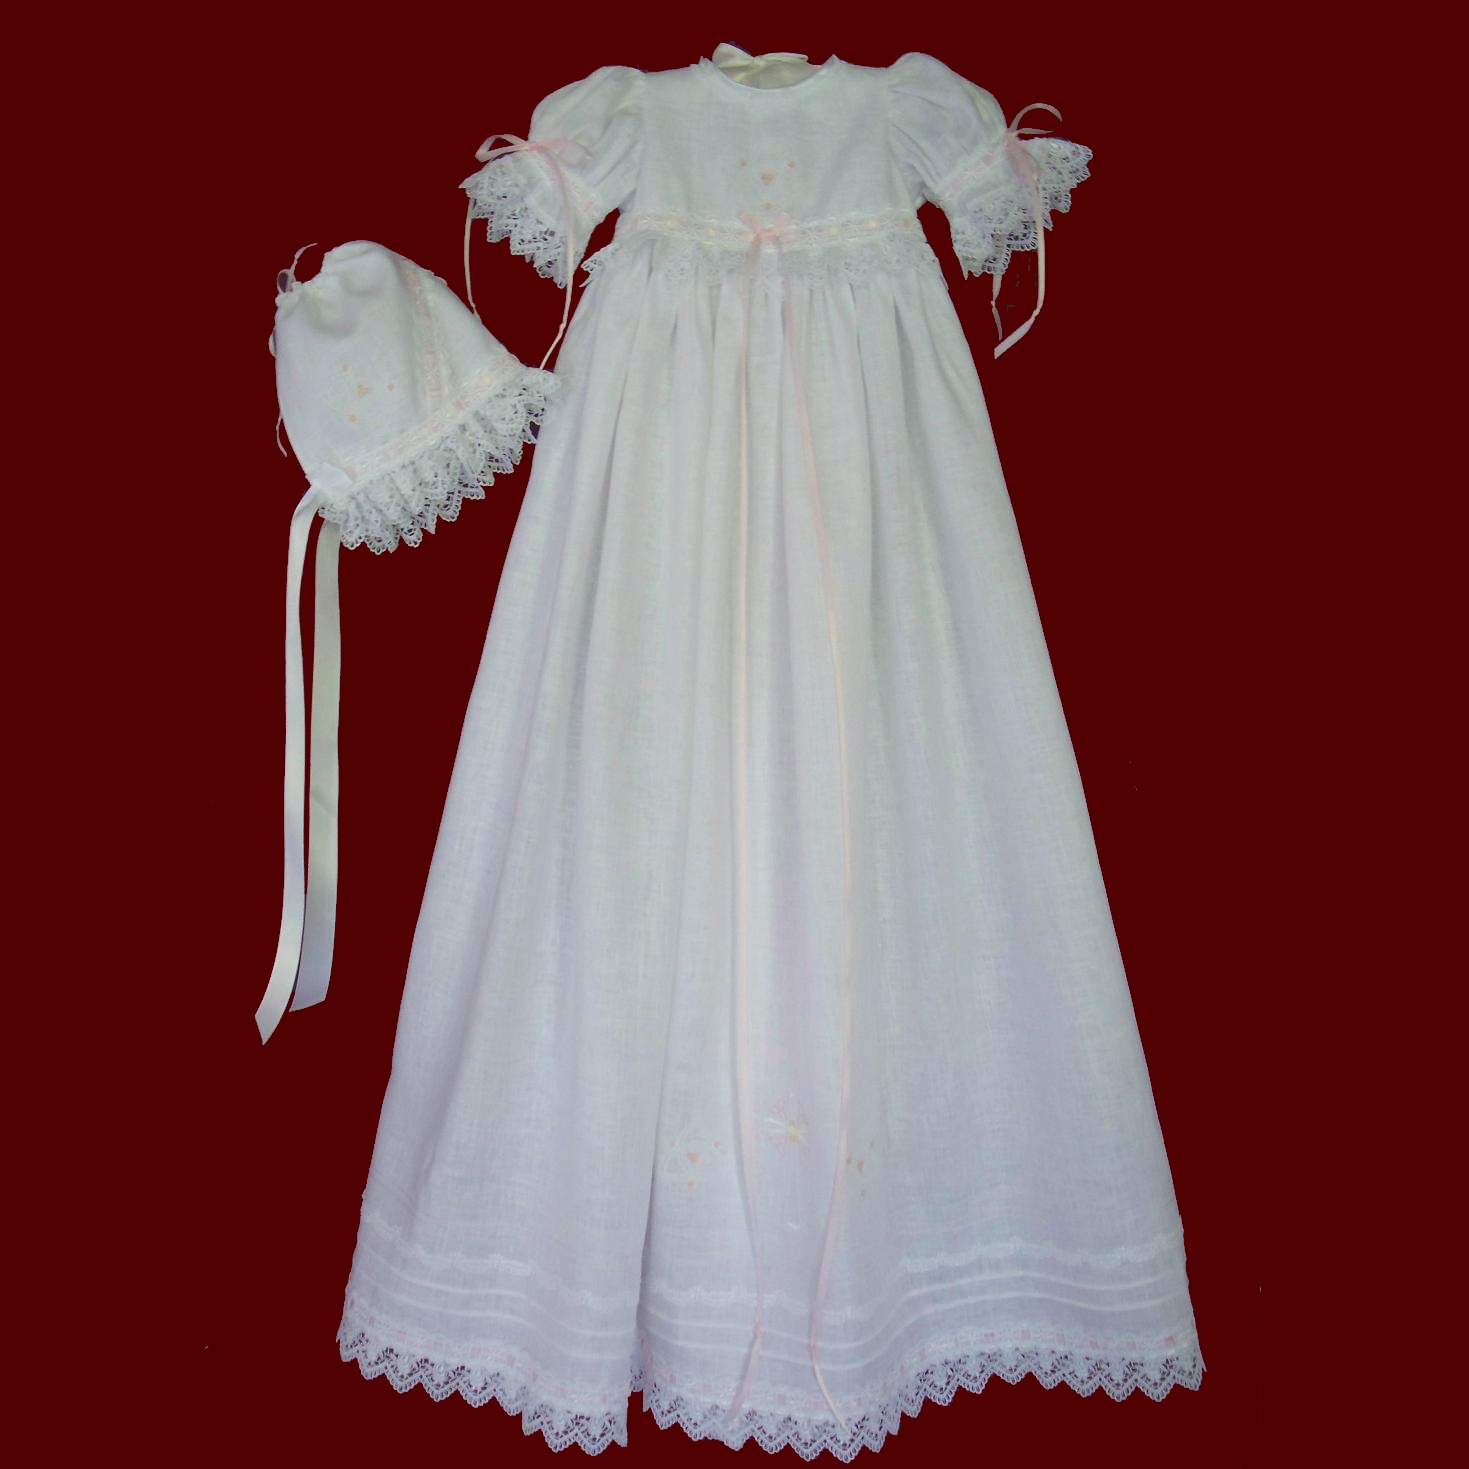 Dress womens clothing: Christening gowns for boys